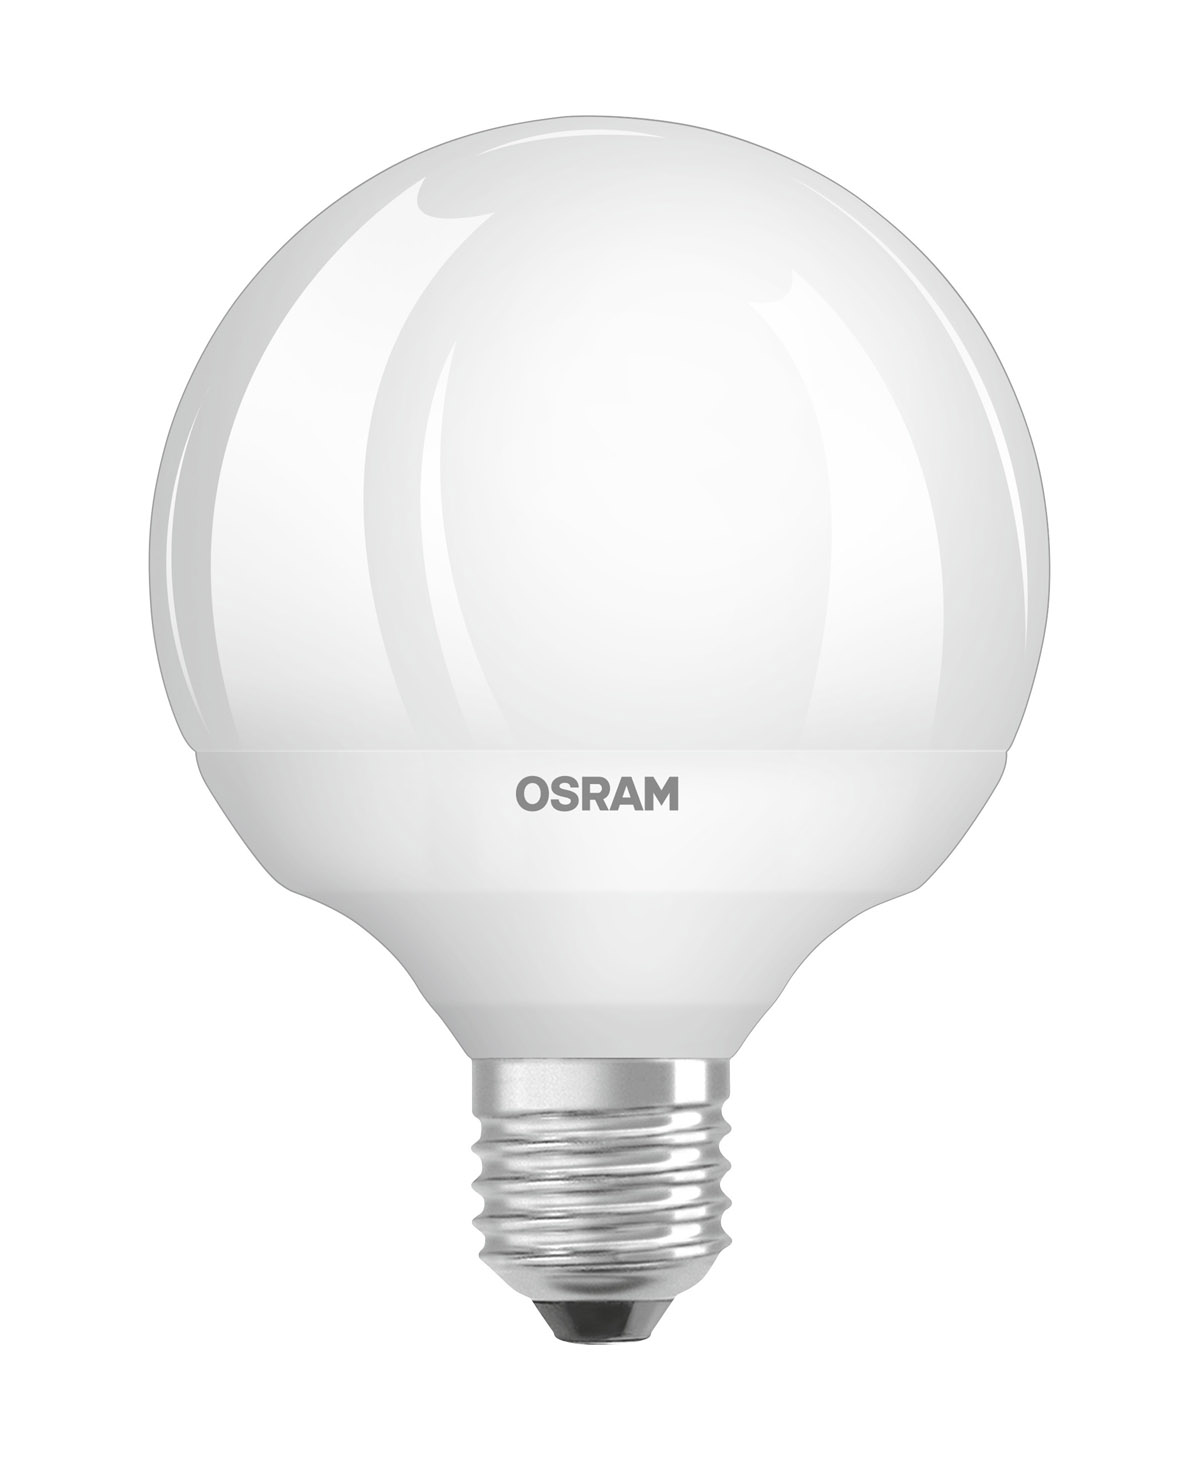 osram led star cl globe e27 9w ersatz f r 60 watt 806 lumen warmwei. Black Bedroom Furniture Sets. Home Design Ideas